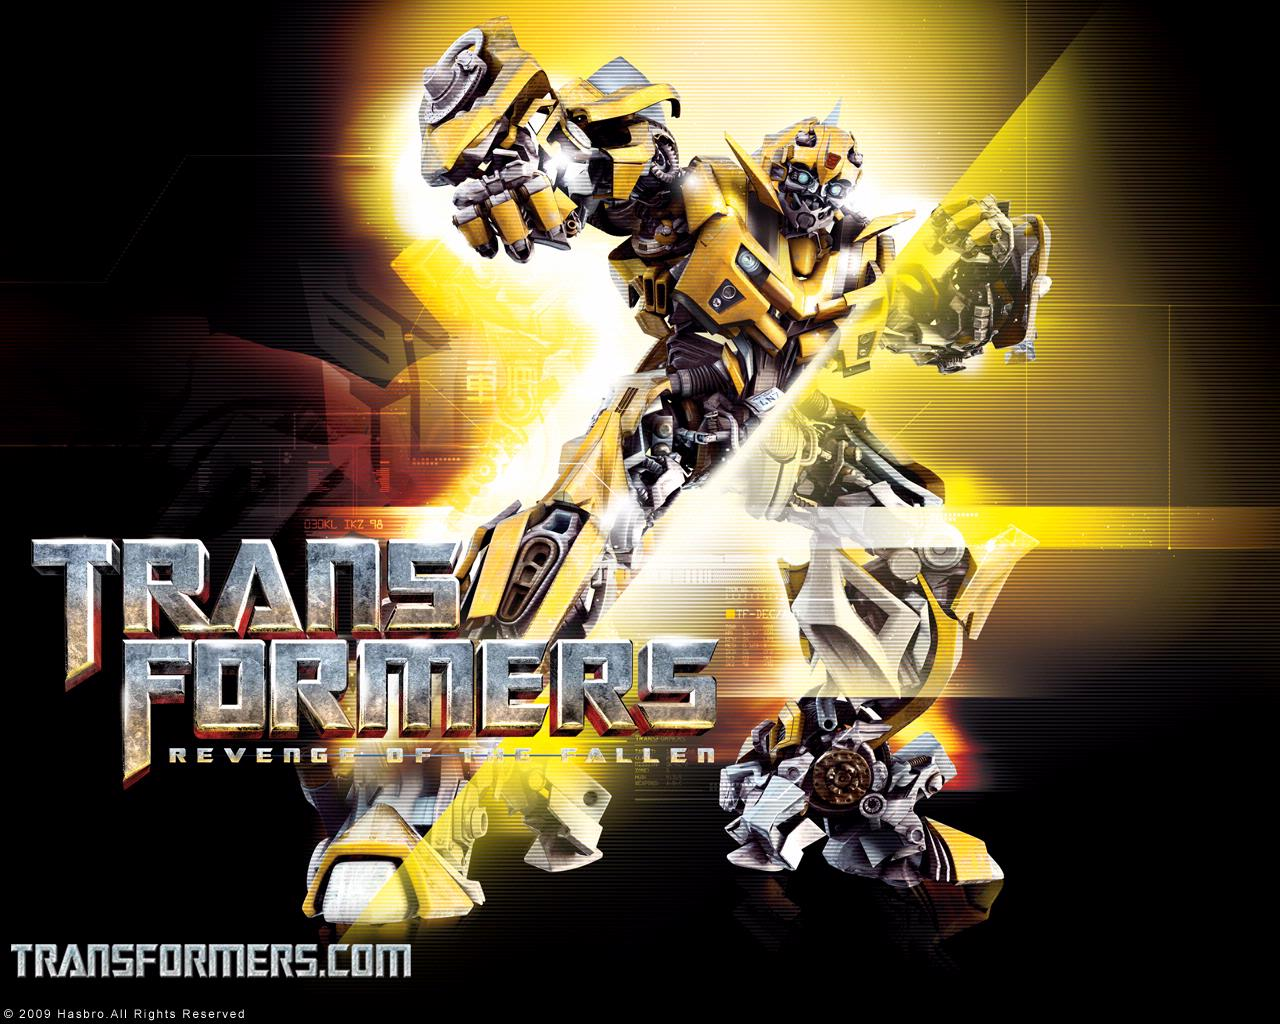 TRANSFORMERS Wallpaper: BUMBLEBEE|Wallpapers|Hasbro